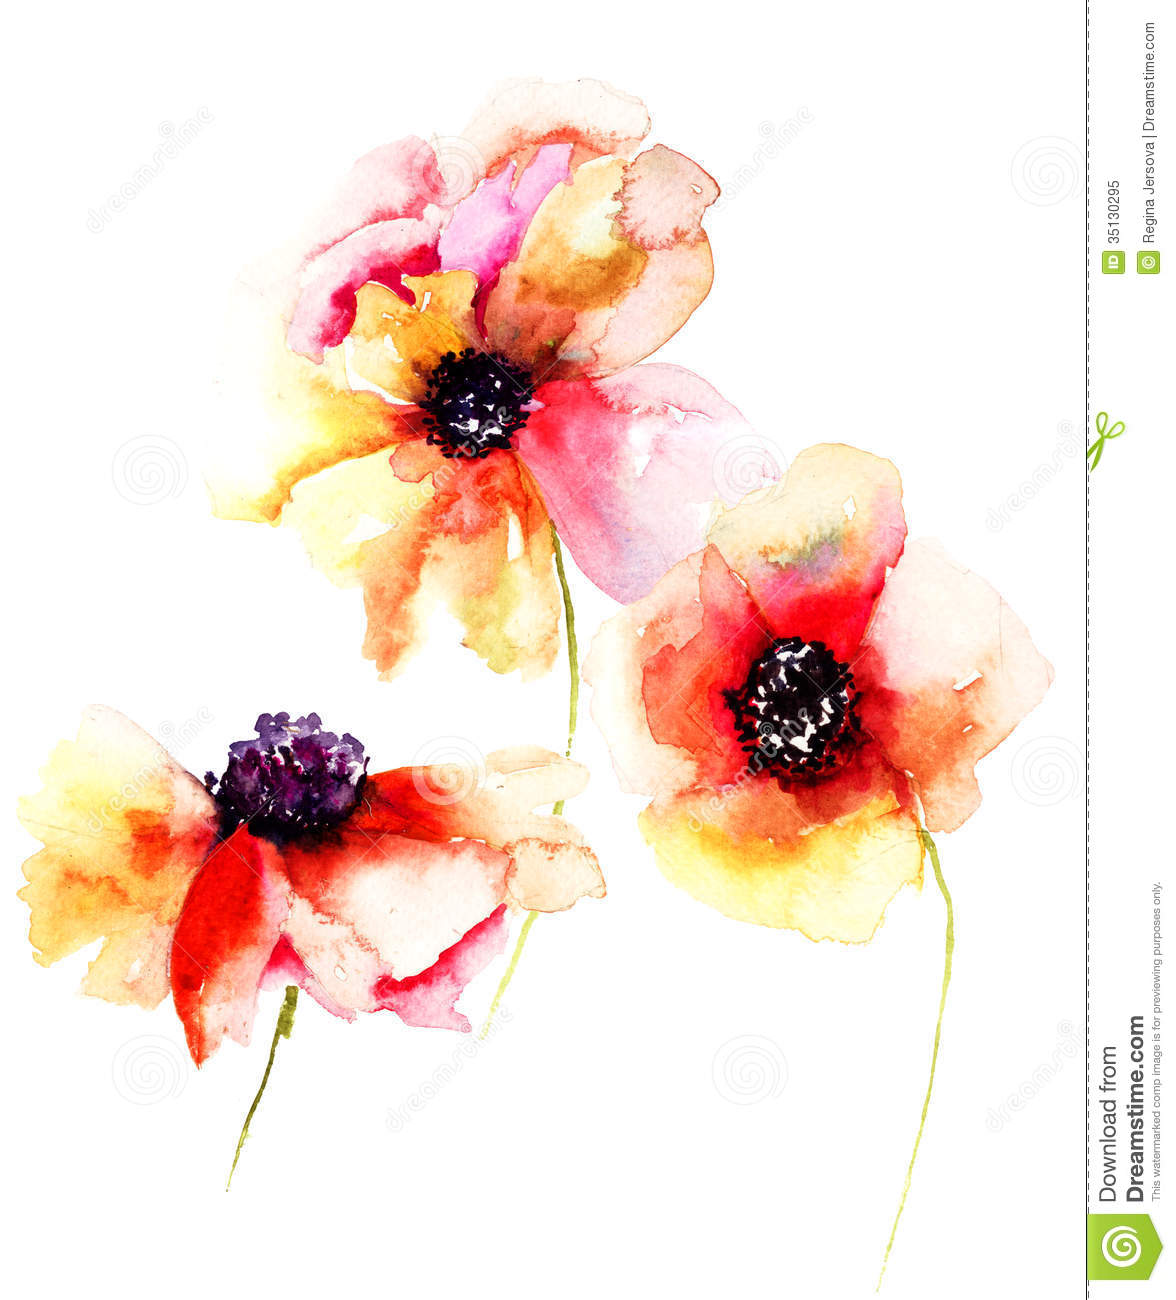 Poppy flowers stock illustration illustration of poppy 35130295 poppy flowers mightylinksfo